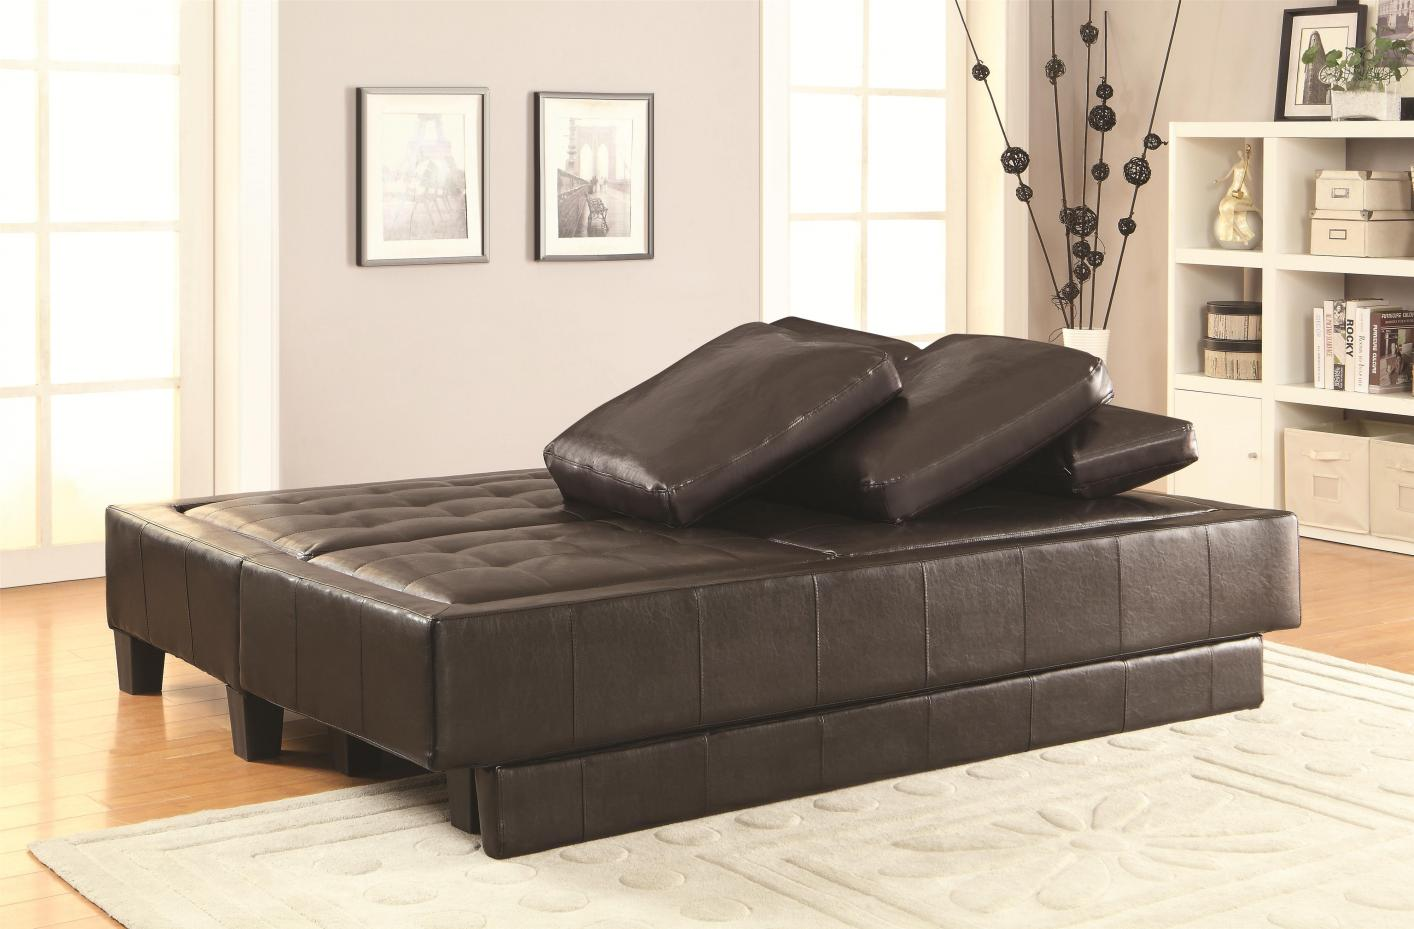 bed and sofa set frame making brown leather ottoman steal a